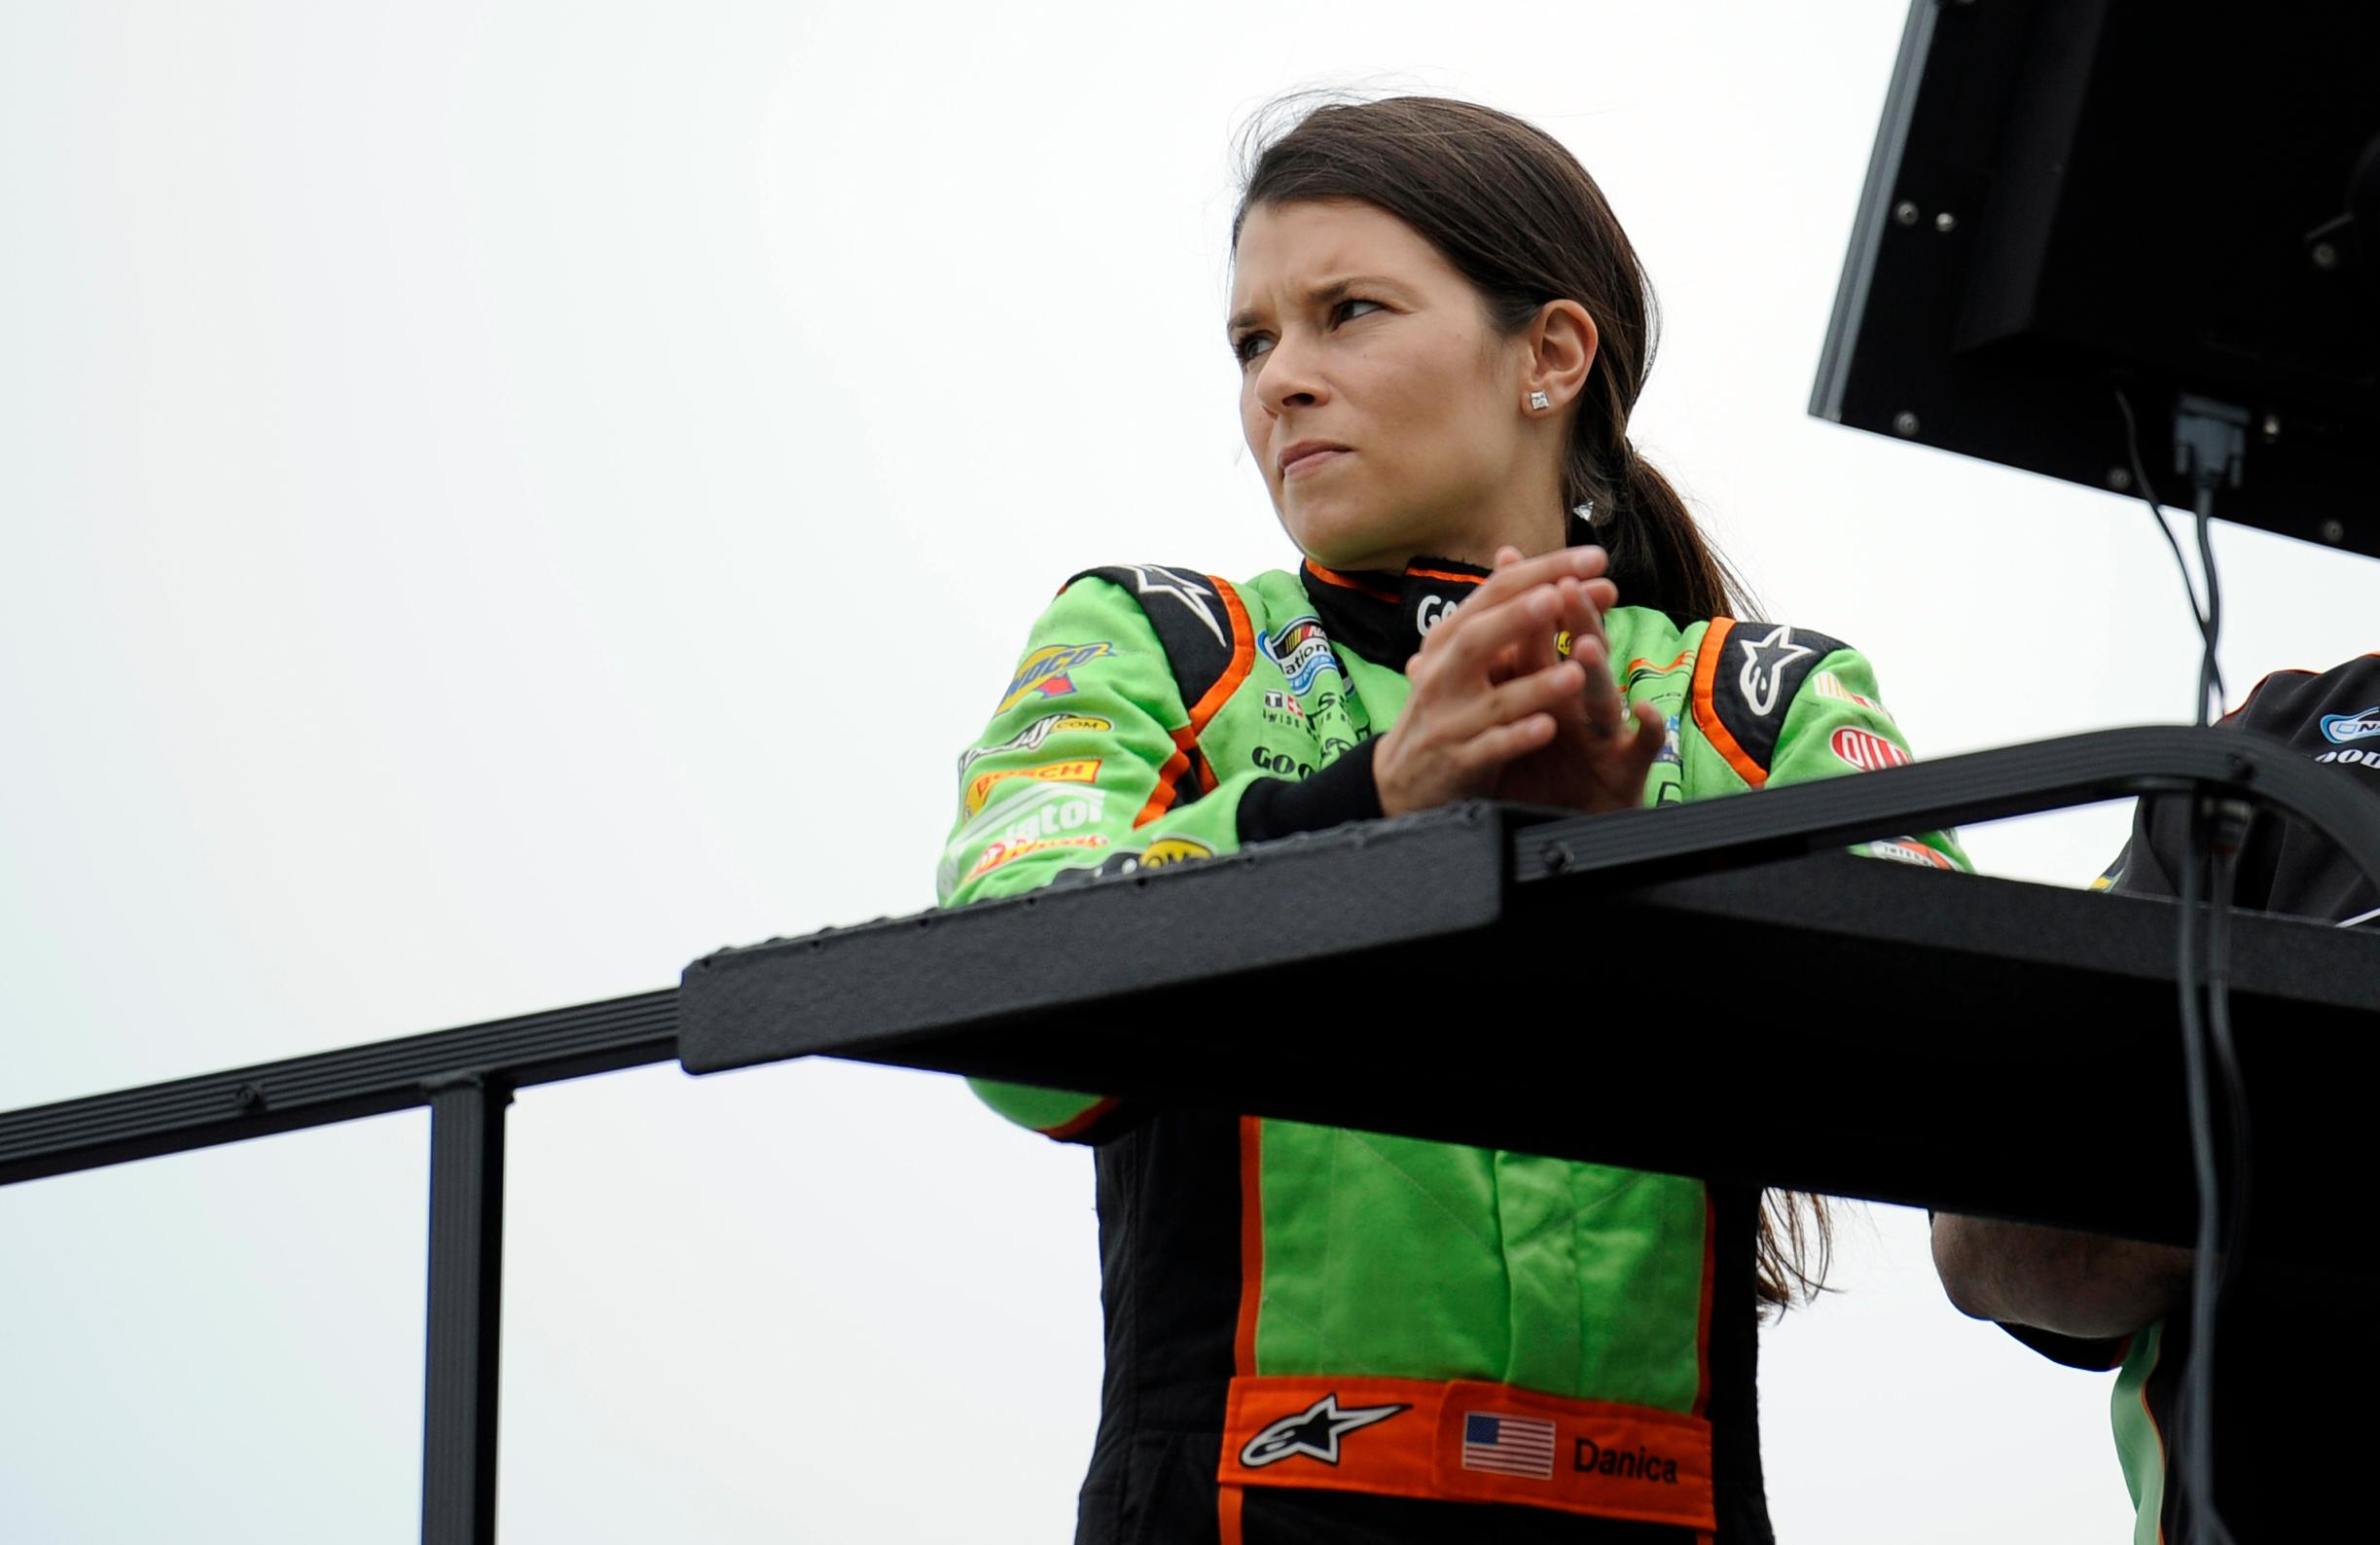 FILE - In this June 1, 2012, file photo, NASCAR Nationwide Series driver Danica Patrick watches from on top of her hauler in Dover, Del. Patrick announced plans Friday, Nov. 17, 2017, to run just 2 races in 2018, the Daytona 500 and the Indianapolis 500, and end her full-time driving career. (AP Photo/Nick Wass, File)